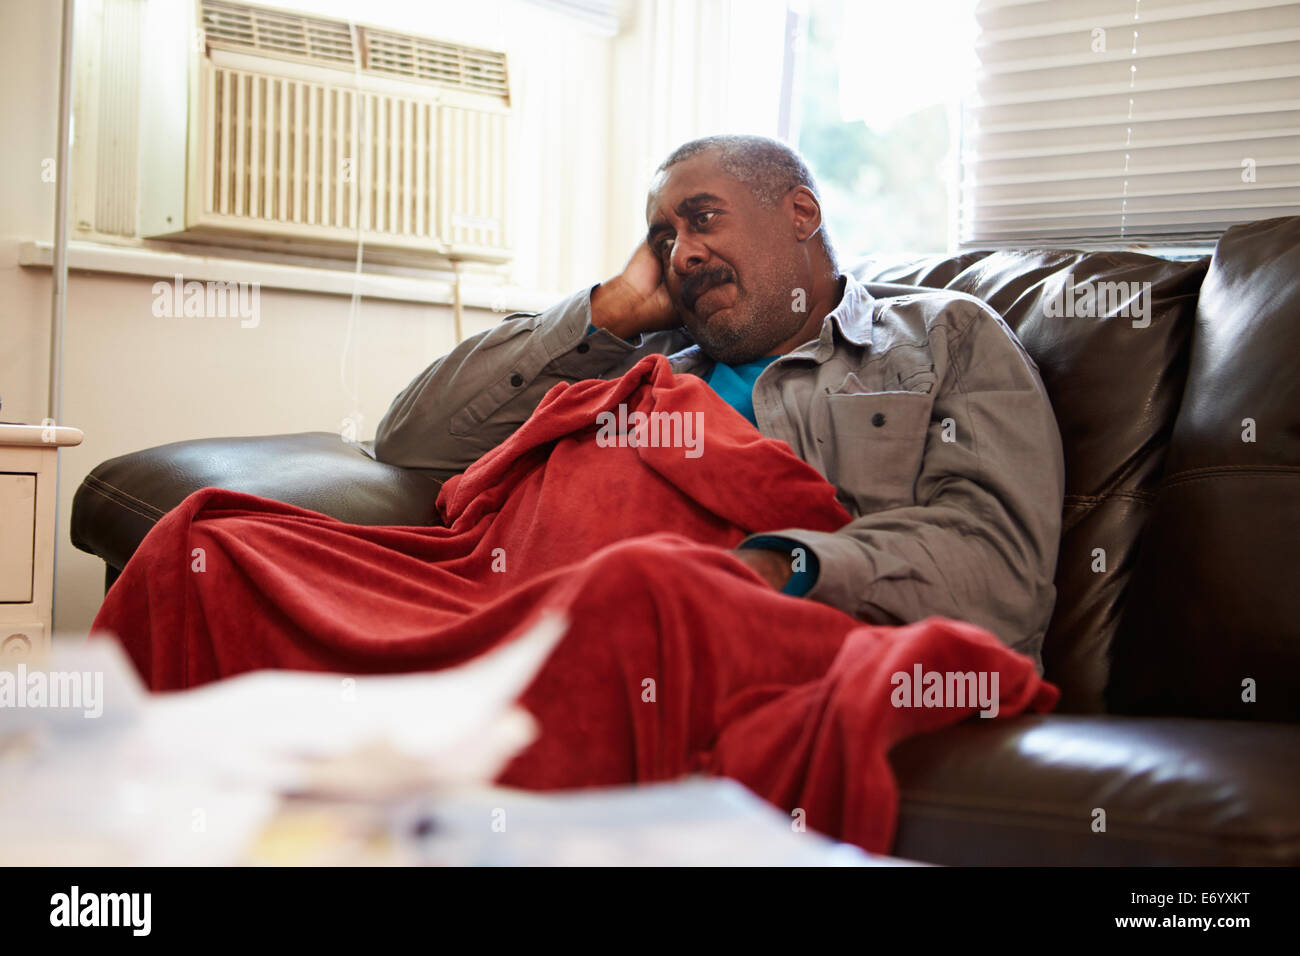 Senior Man Trying To Keep Warm Under Blanket At Home - Stock Image